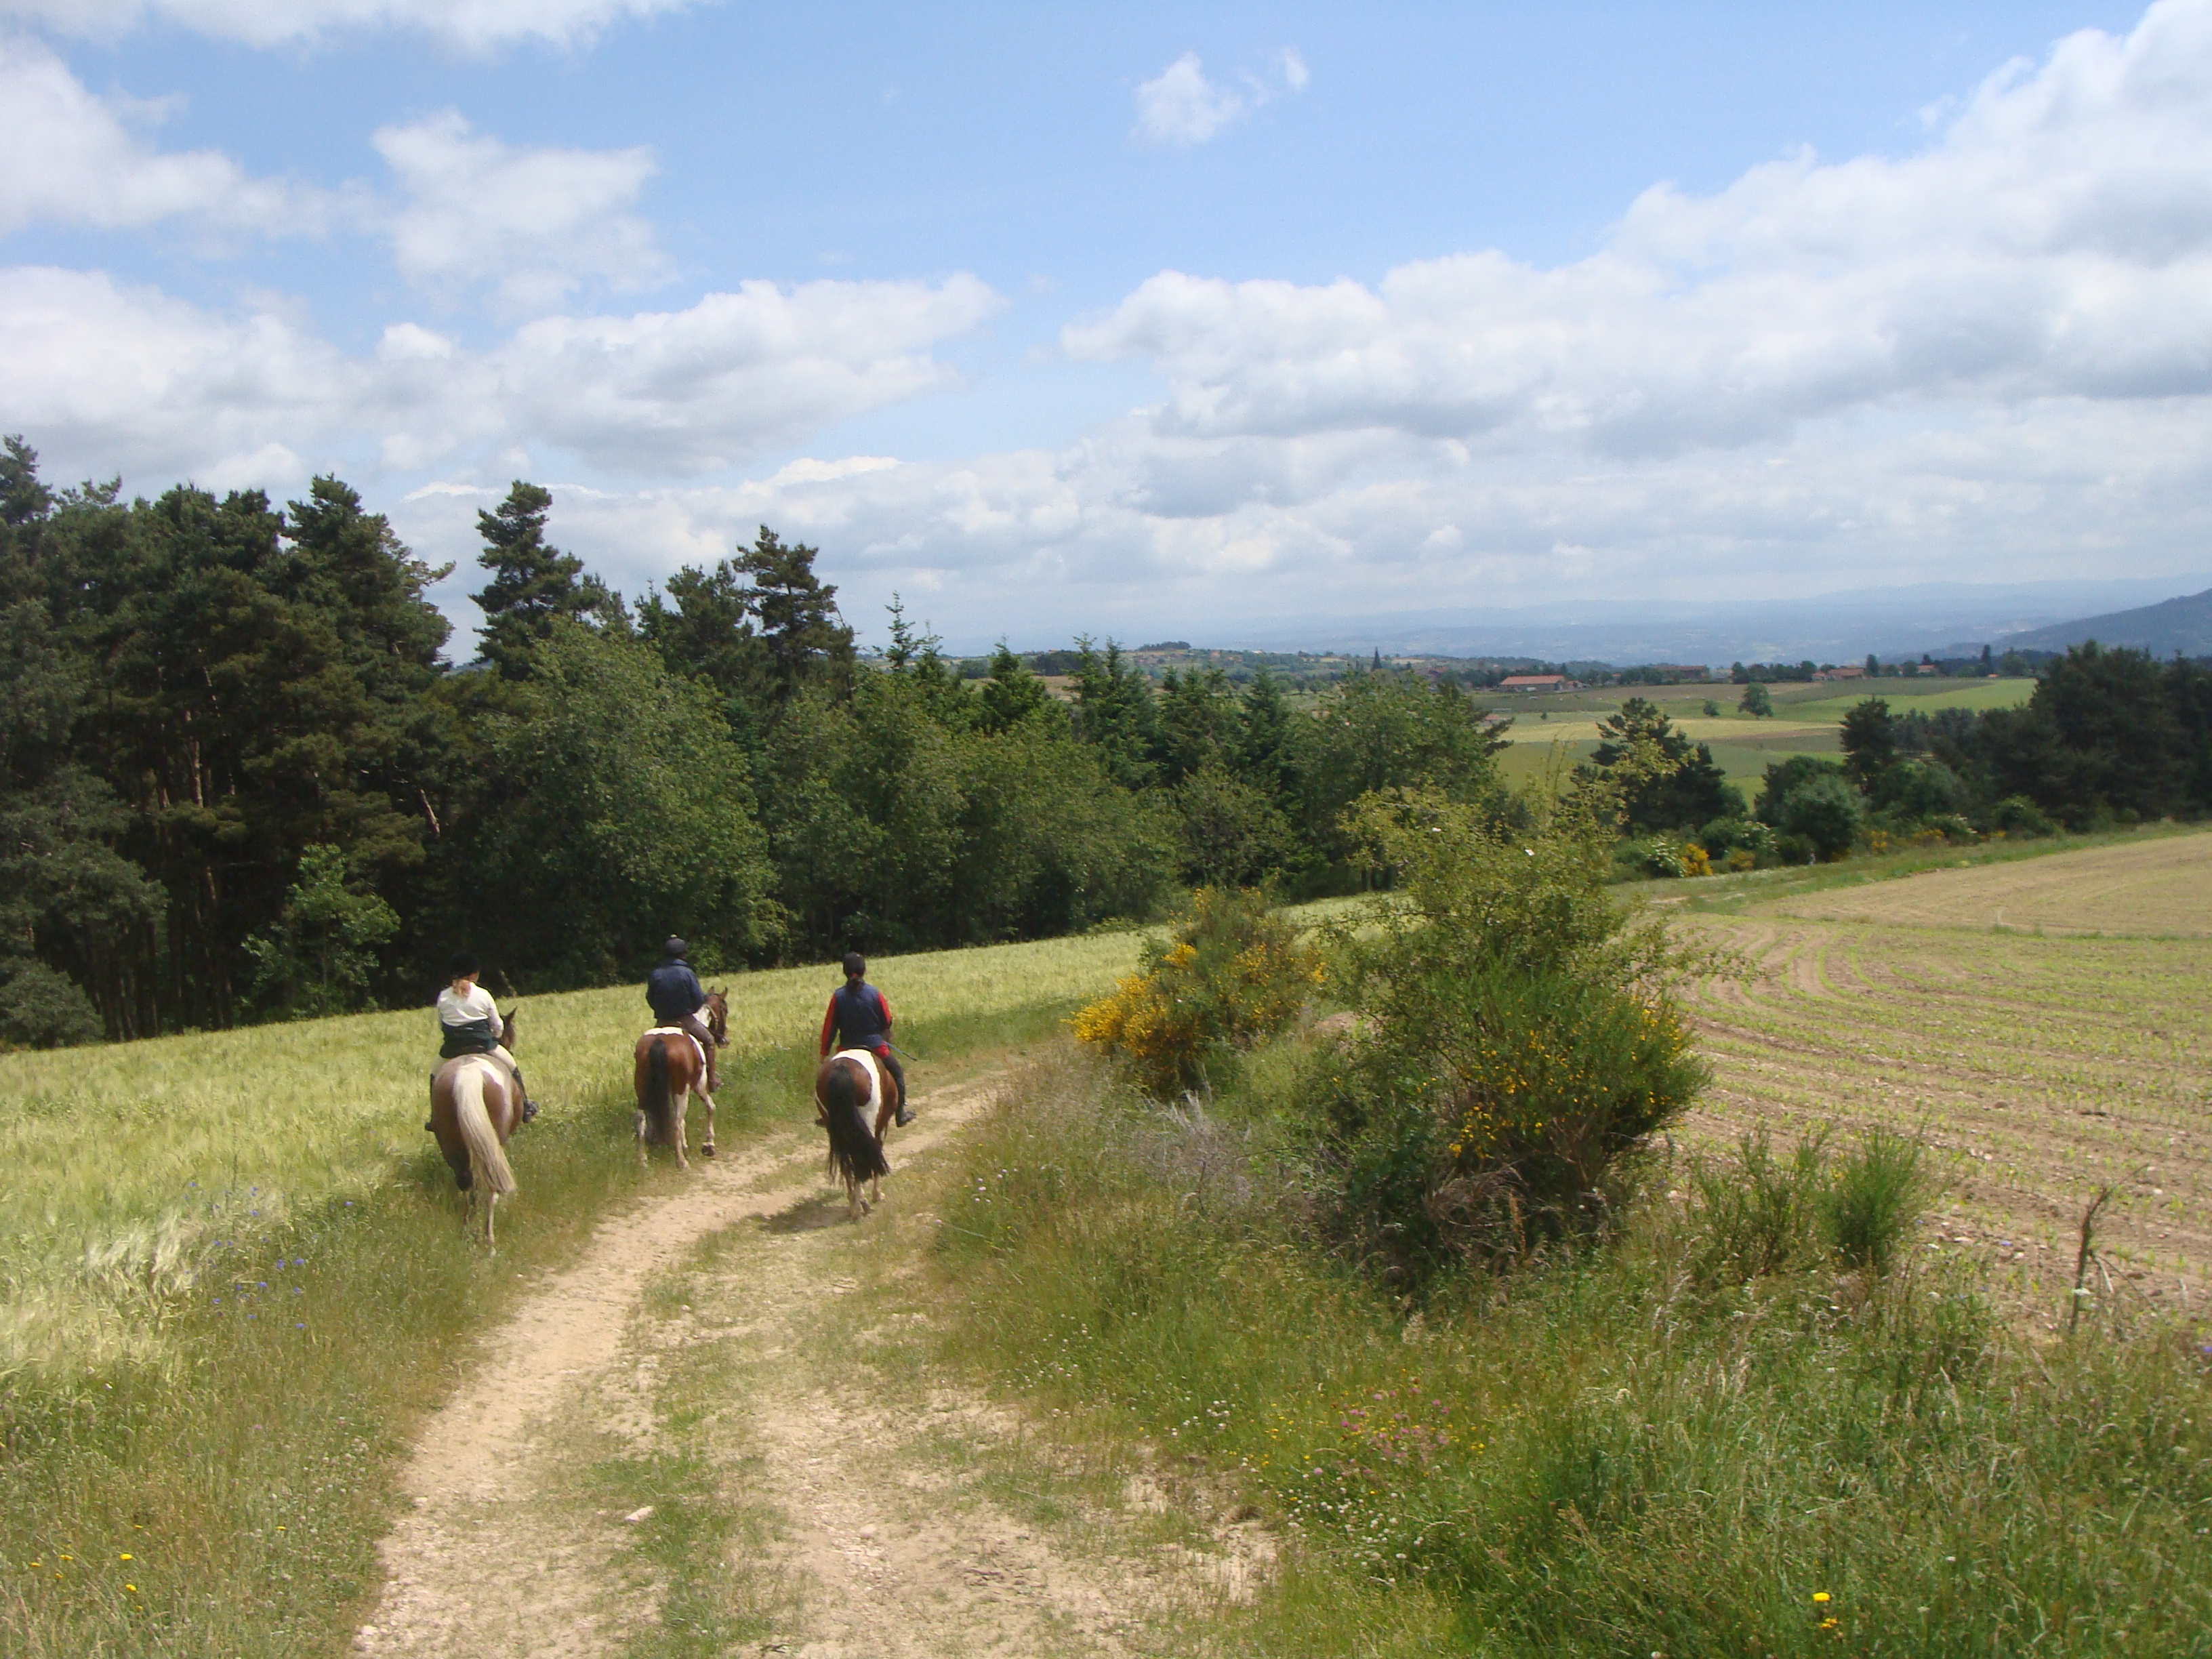 The beautiful landscape of the Auvergne